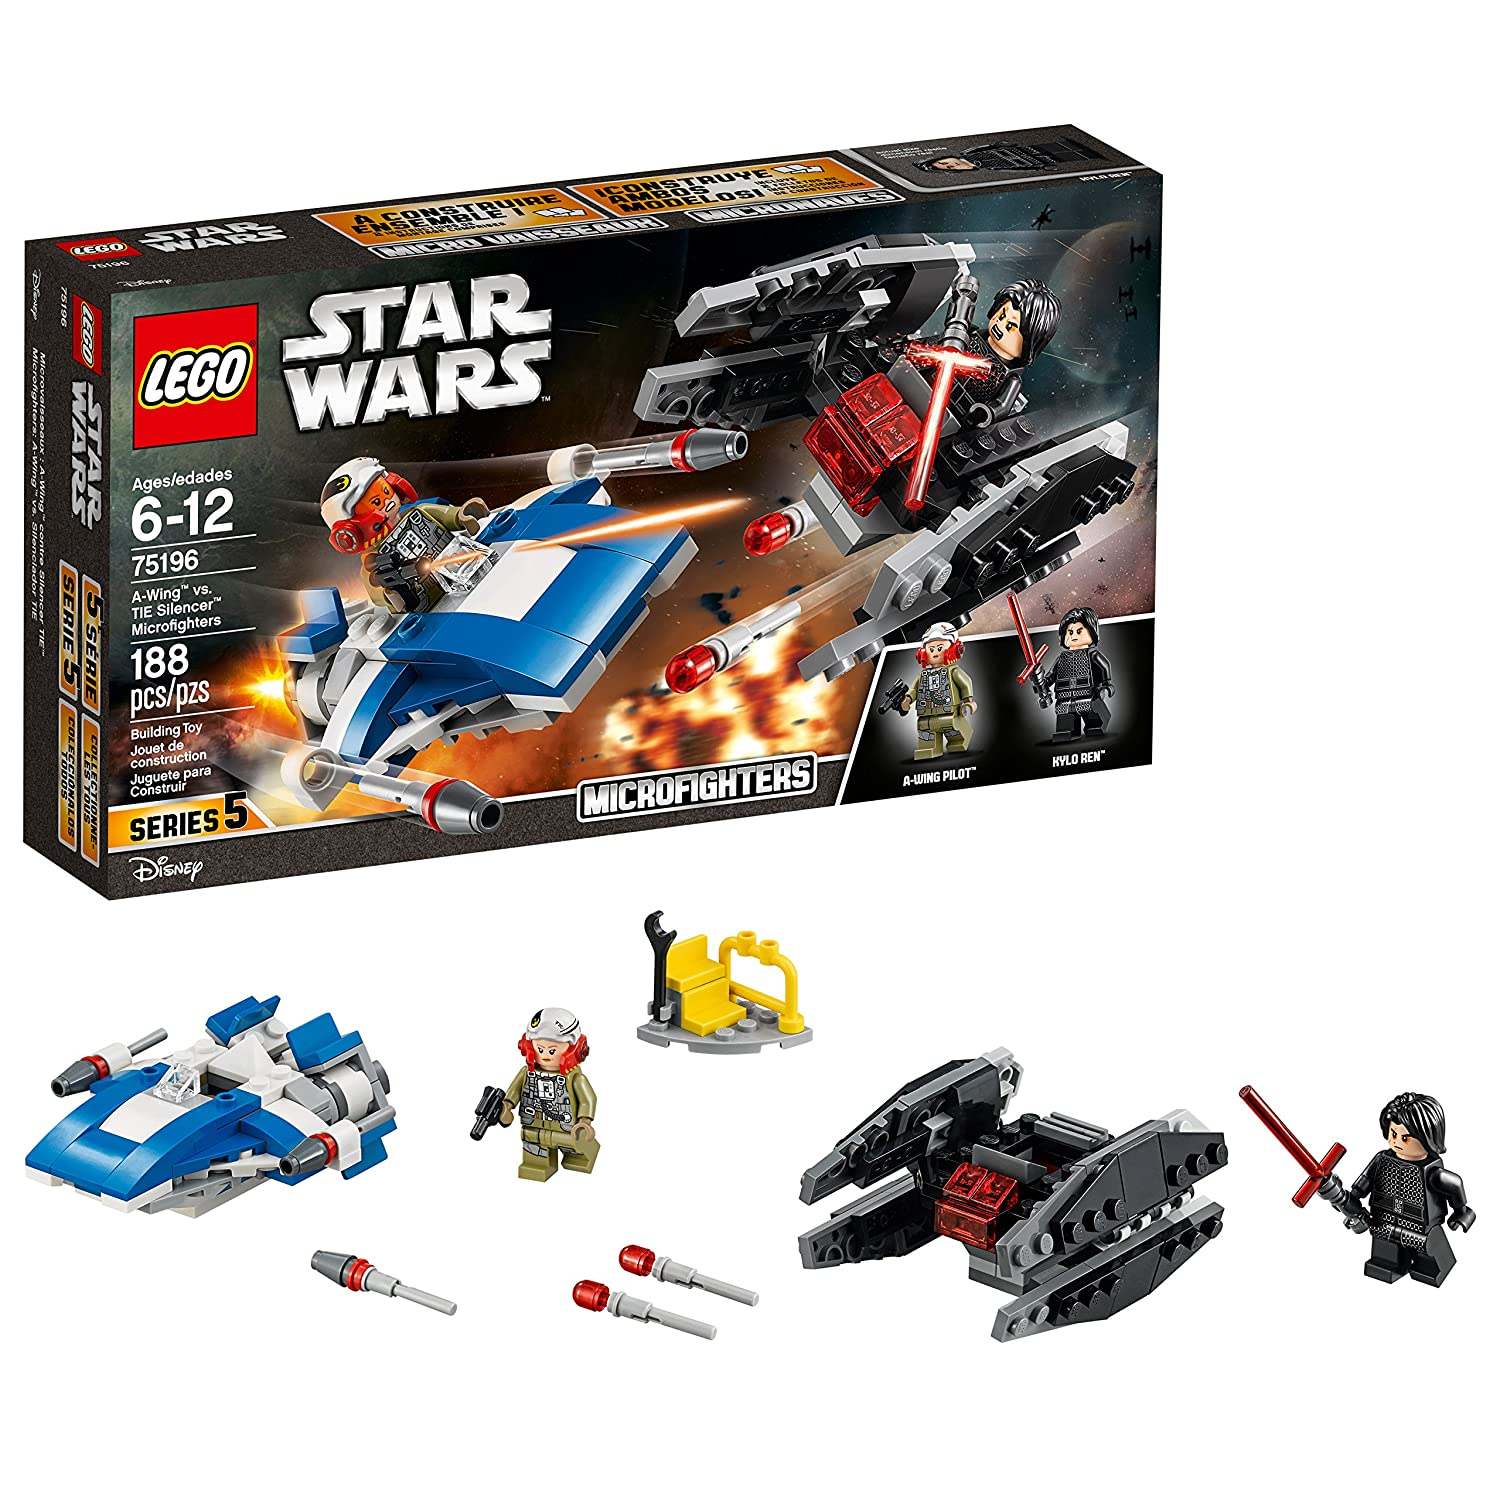 20% OFF LEGO Star Wars A-Wing vs. TIE Silencer Microfighters 75196